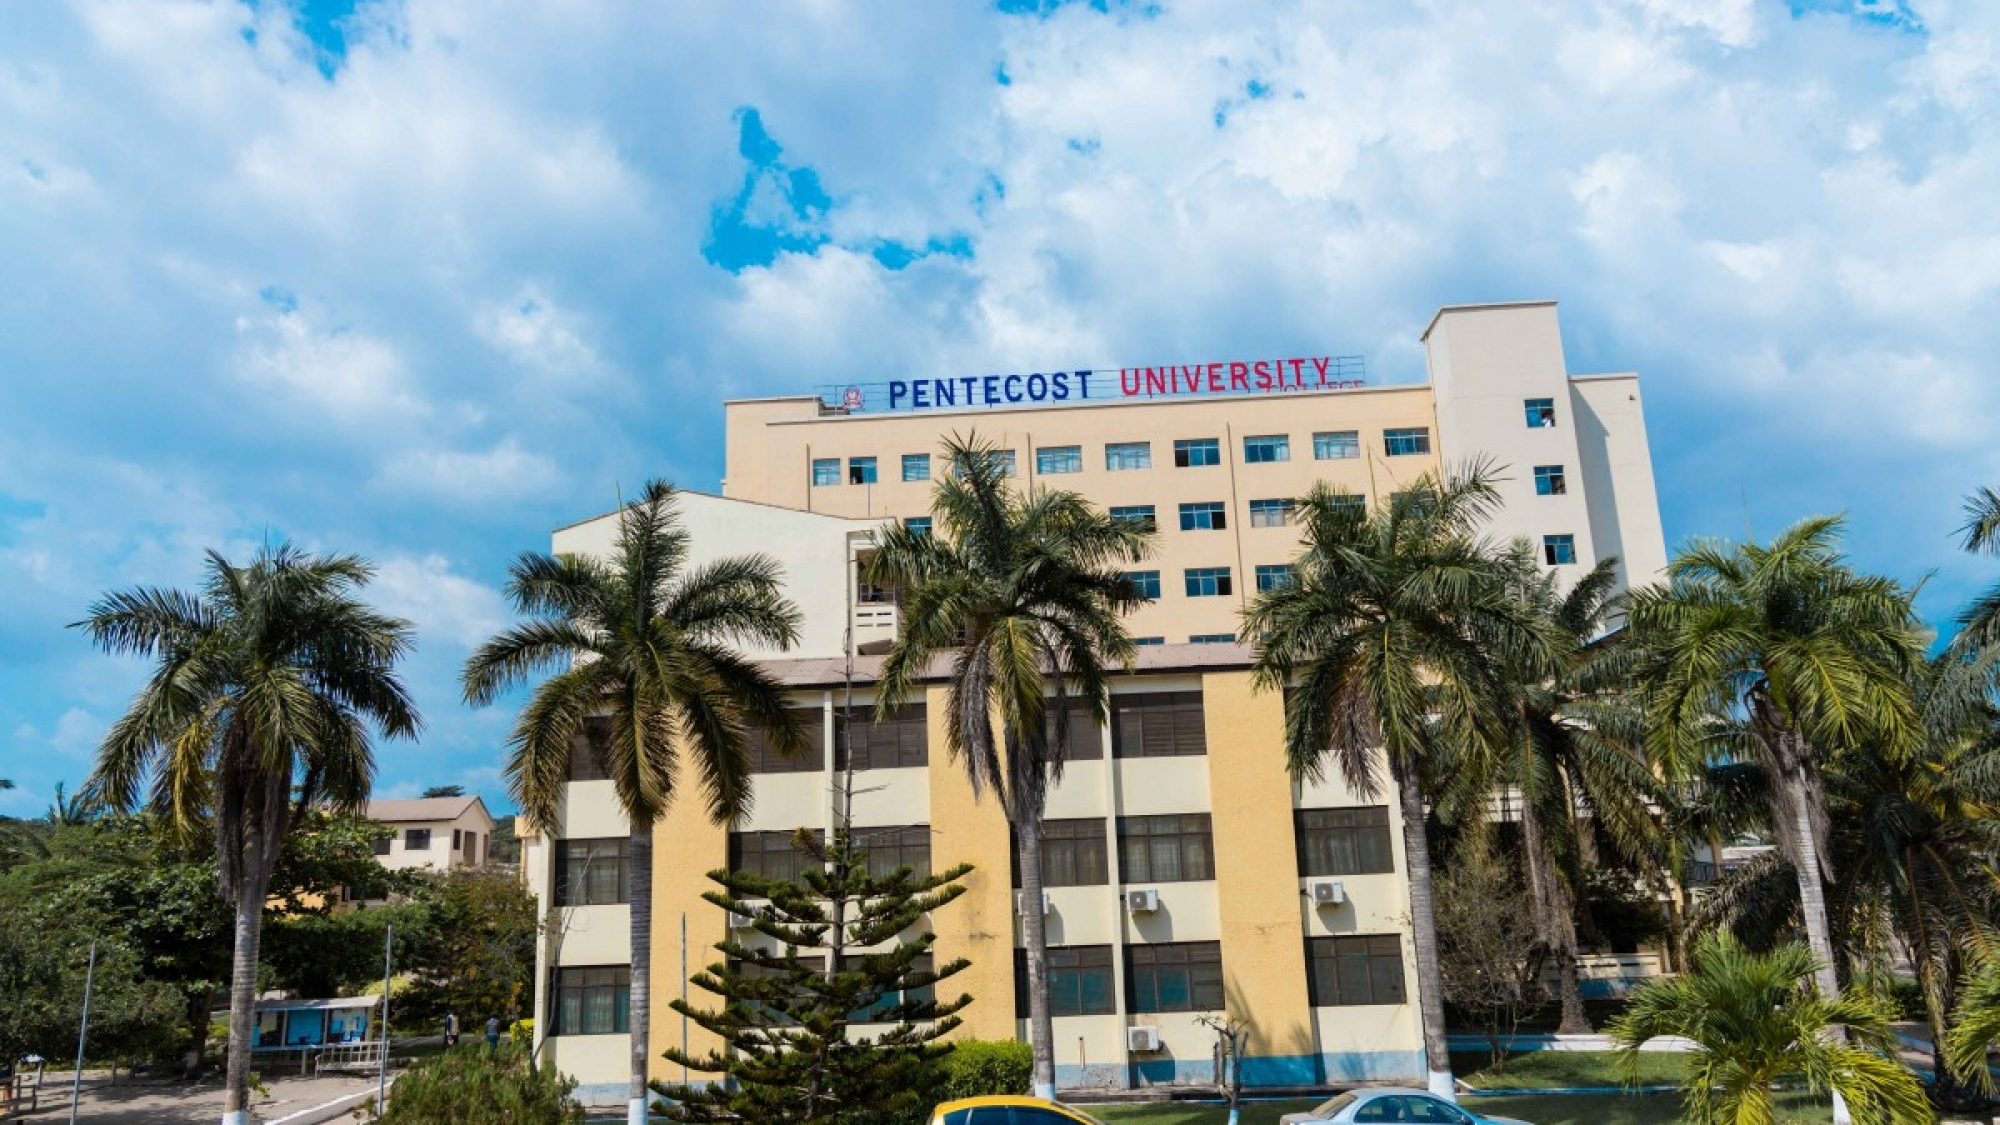 Pentecost University A Vision In Progress!